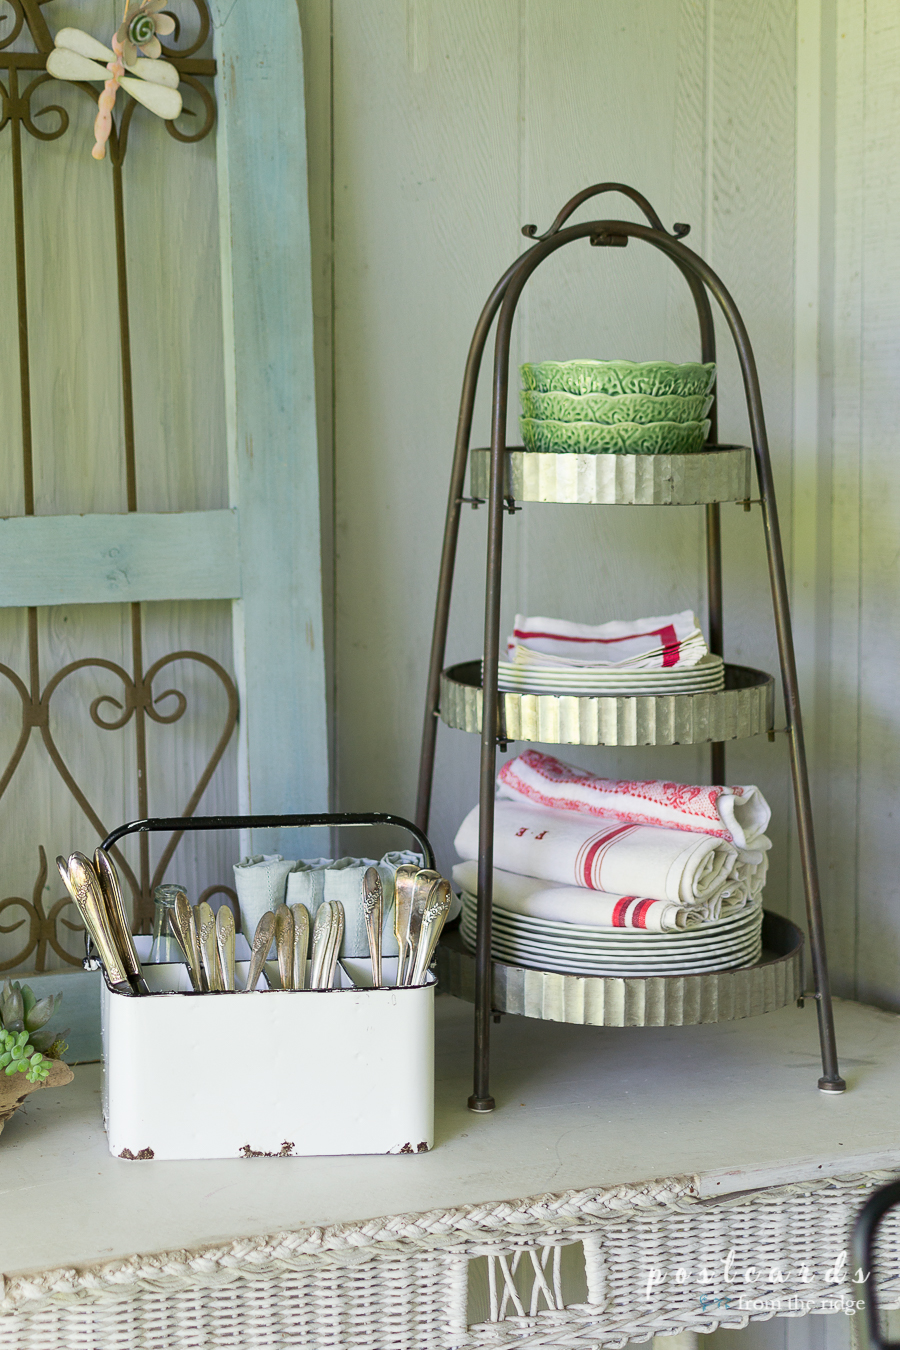 white enamelware utensil caddy and galvanized tiered stand